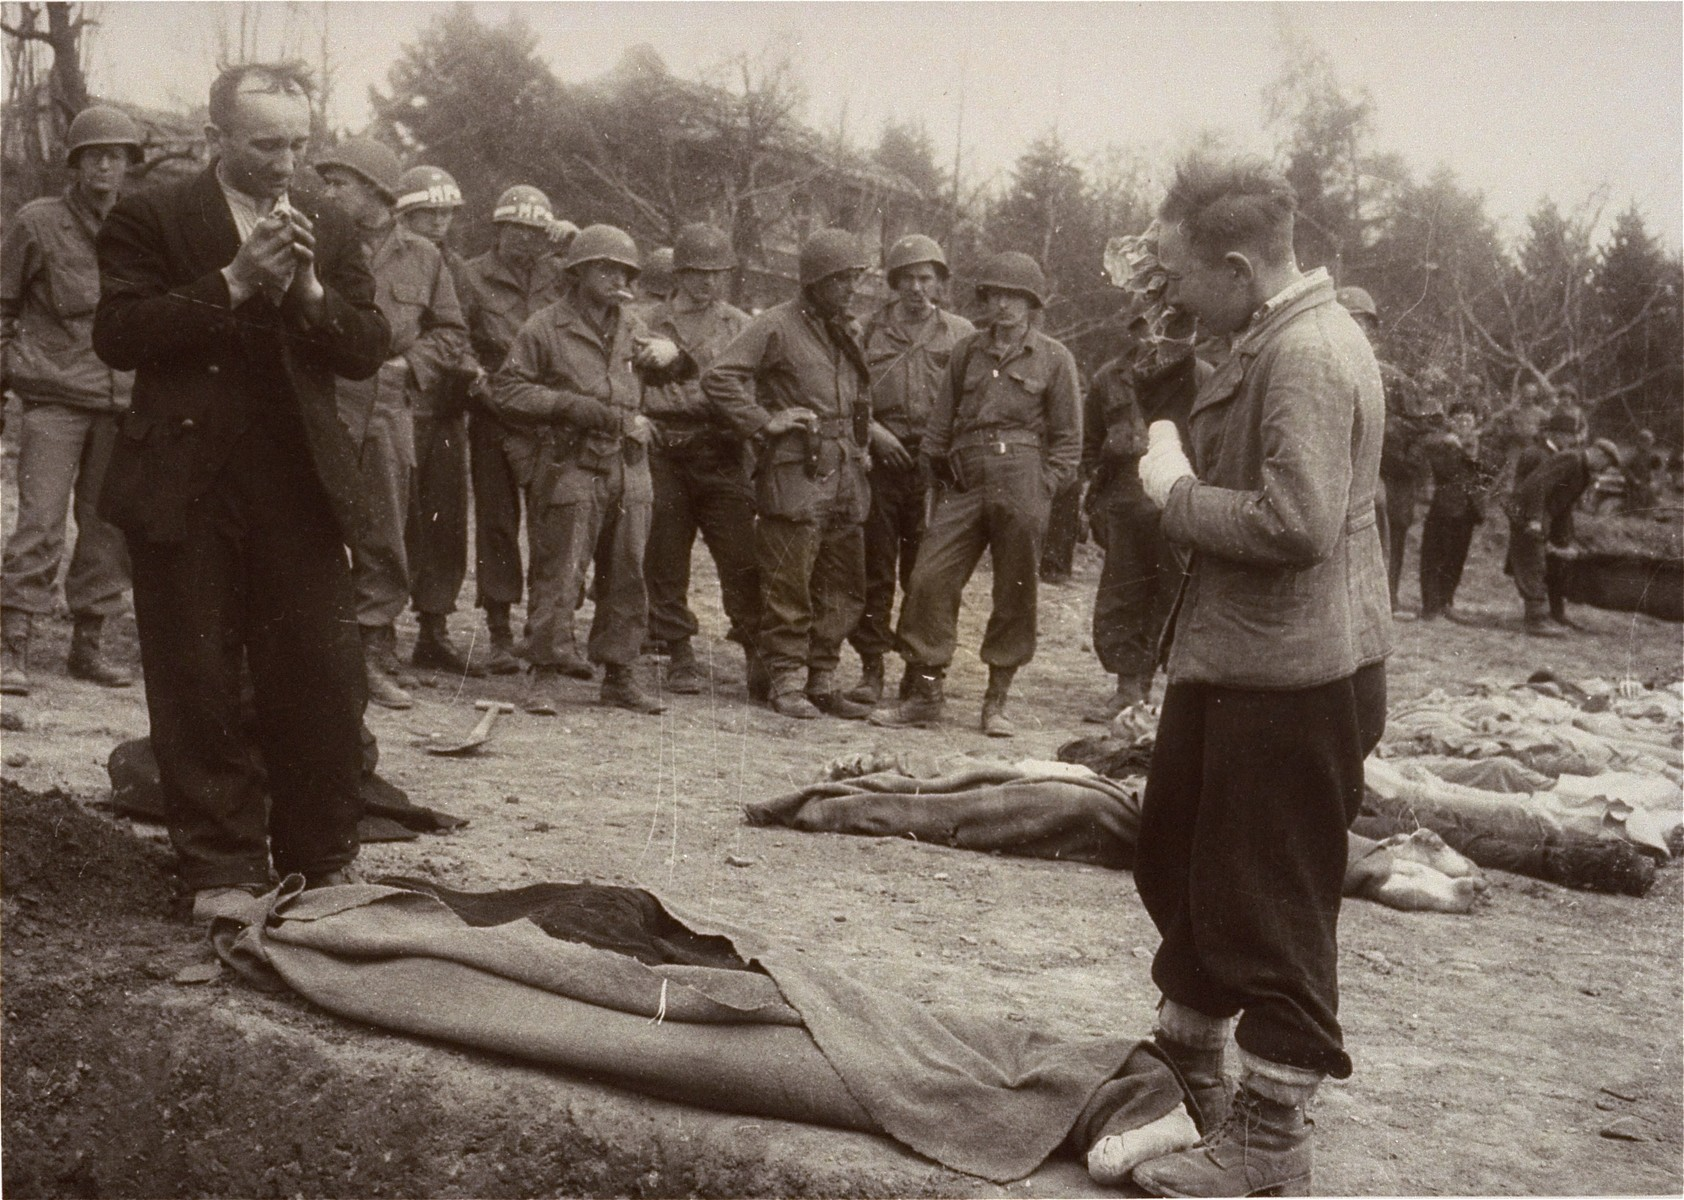 A Polish boy, Michael Kallaur, weeps while his father Walter prays over the body of the boy's grandmother, Elizabeth Kallaur,who died in the Nordhausen concentration camp.   Elizabeth's head had been severed shortly before liberation.  The Kallaur family was sent to Nordhausen as punishment for helping Jews in the Pinsk region.  These survivors would not allow the Germans to touch their dead, even after Colonel D.B. Hardin ordered the civilian population of the town of Nordhausen to bury the corpses of prisoners found in the Nordhausen concentration camp.